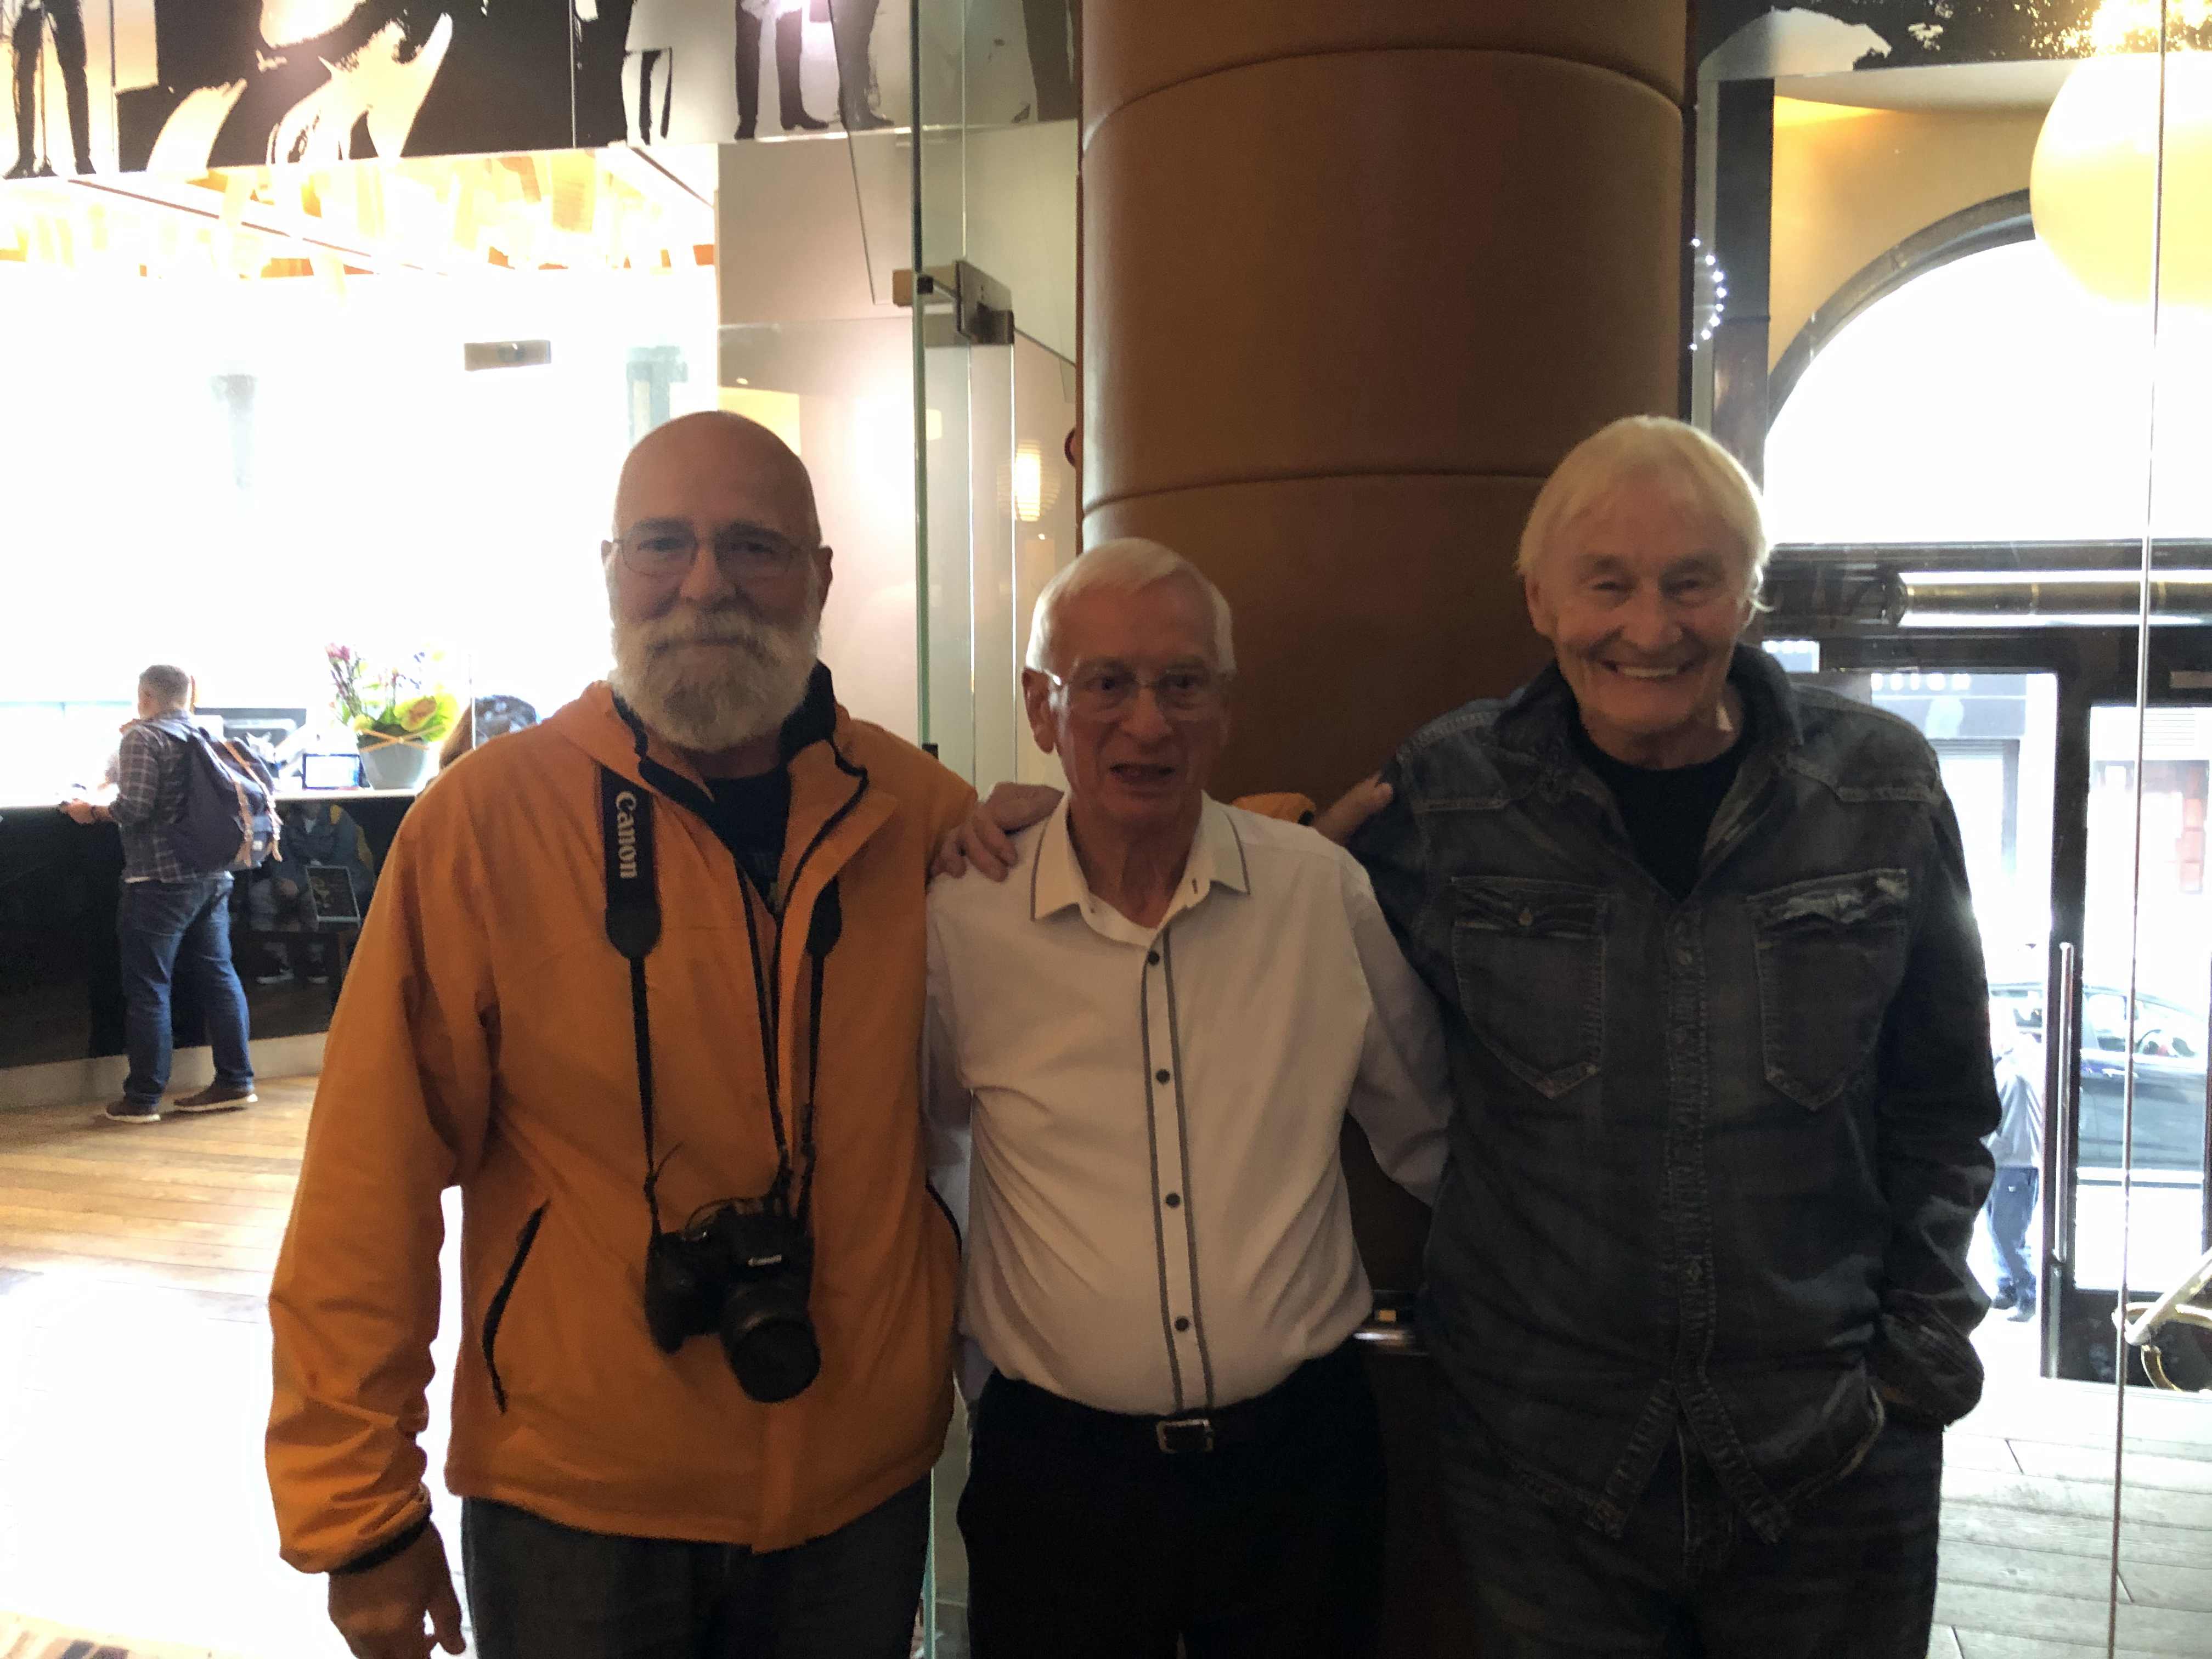 Original Quarrymen, Colin Hanton & Len Garry with Beatles Tour fan